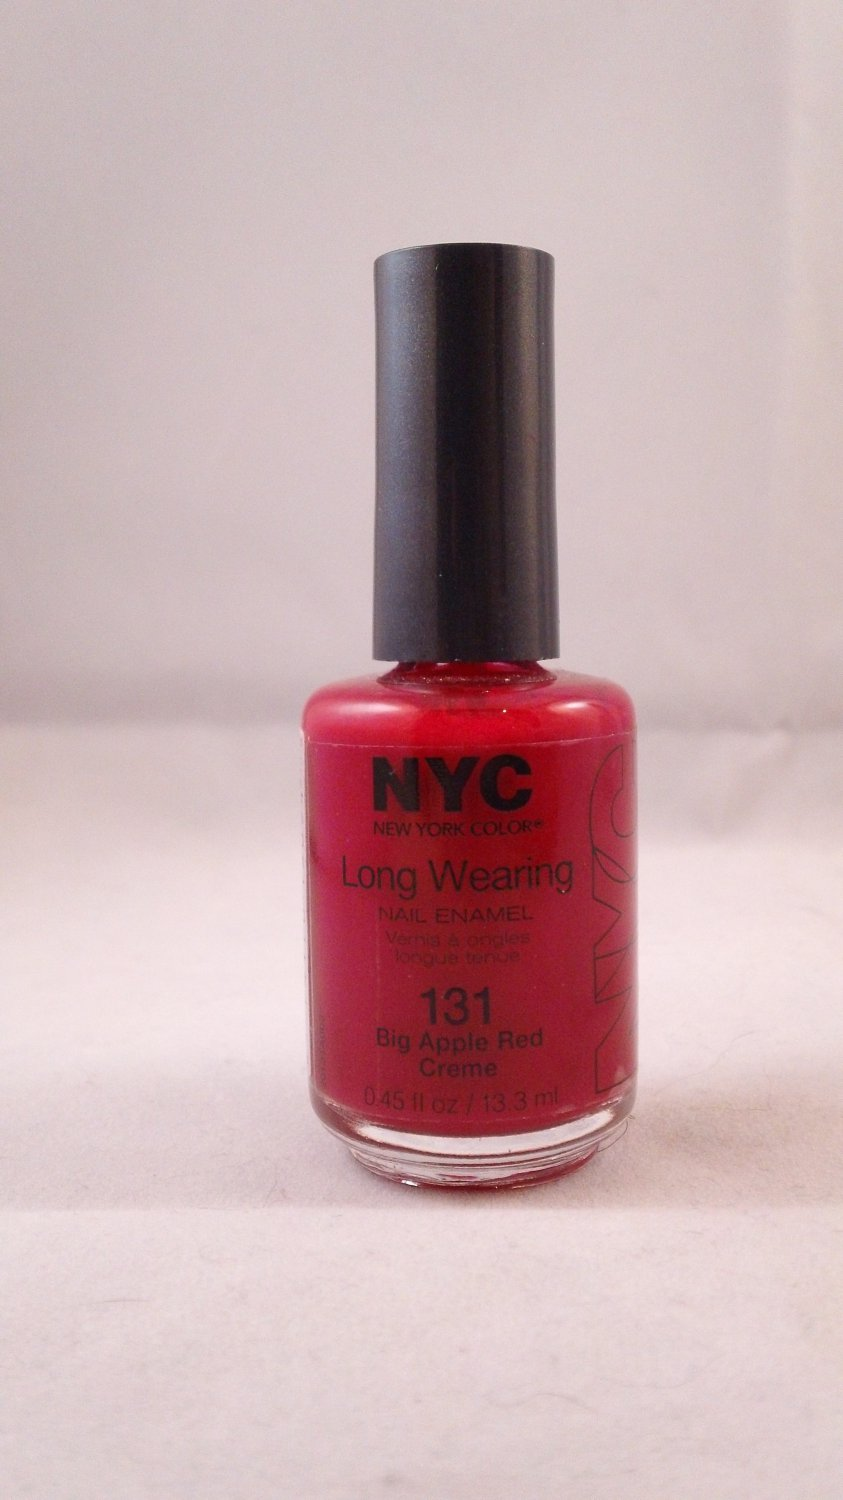 NYC New York Color Long Wearing Nail Enamel Lacquer Polish #131 Big Apple Red Creme